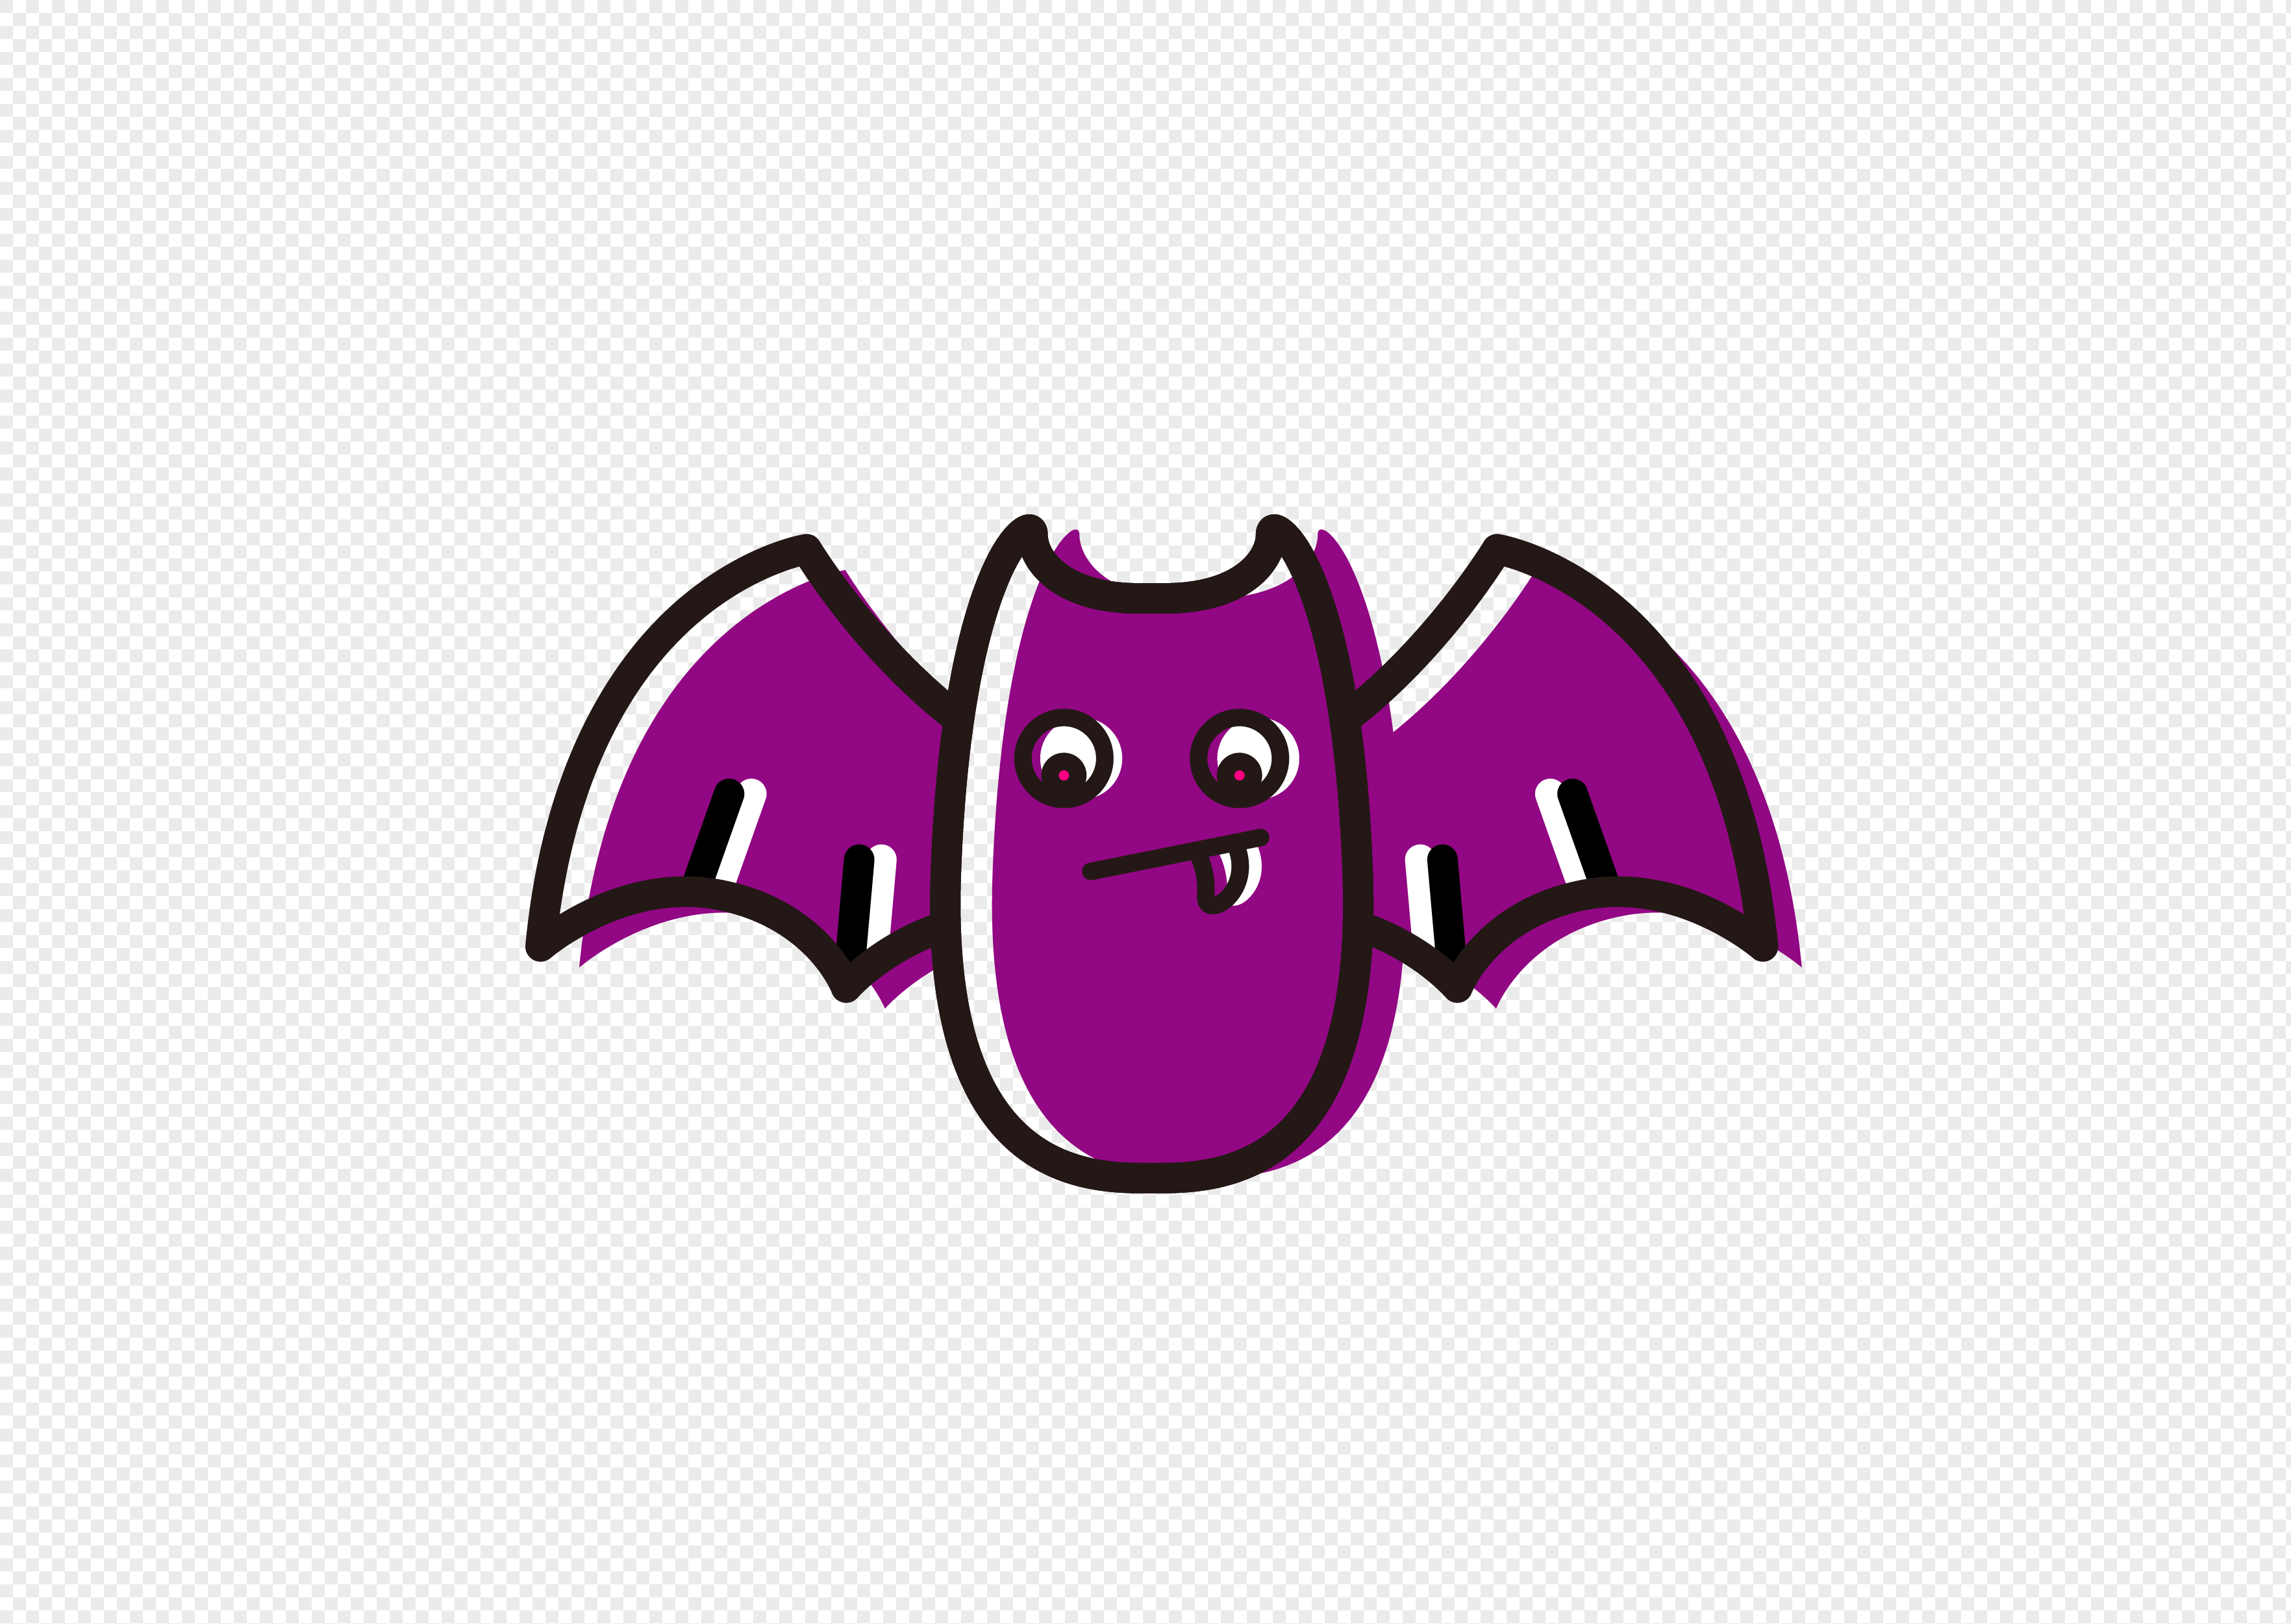 3528x2501 Bat Vector Hd Illustration Png Image Picture Free Download